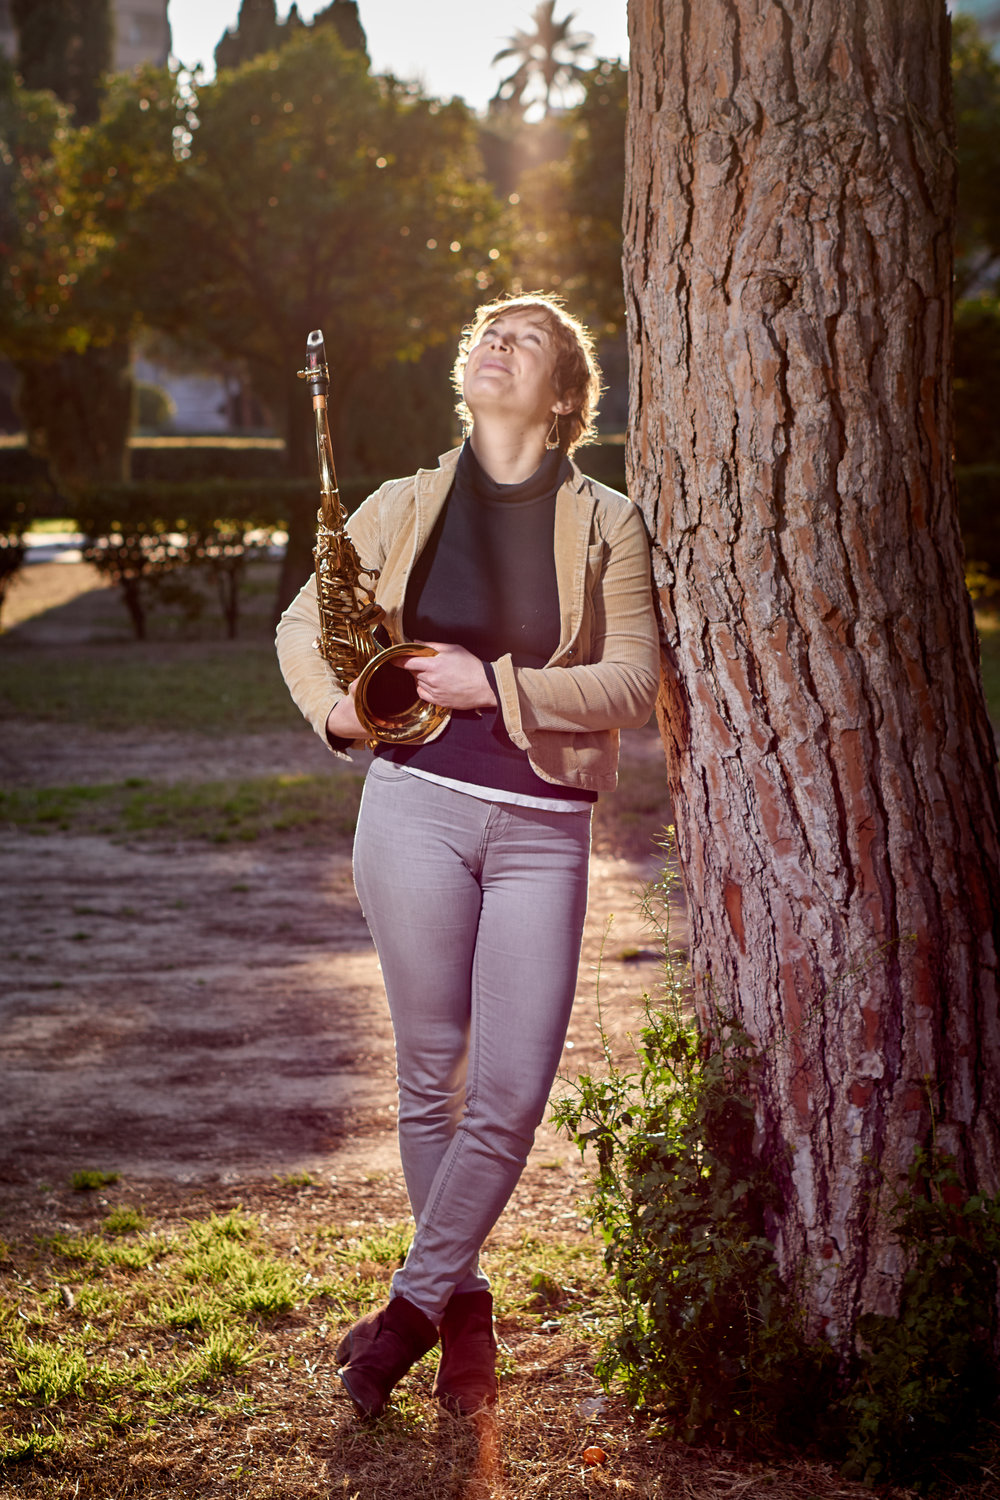 - You can check out some of Sylvie´s new music here . She also told me about some plans to record new material with a fellow Berklee student, Saxophone and Marimba . Cant wait to hear it!